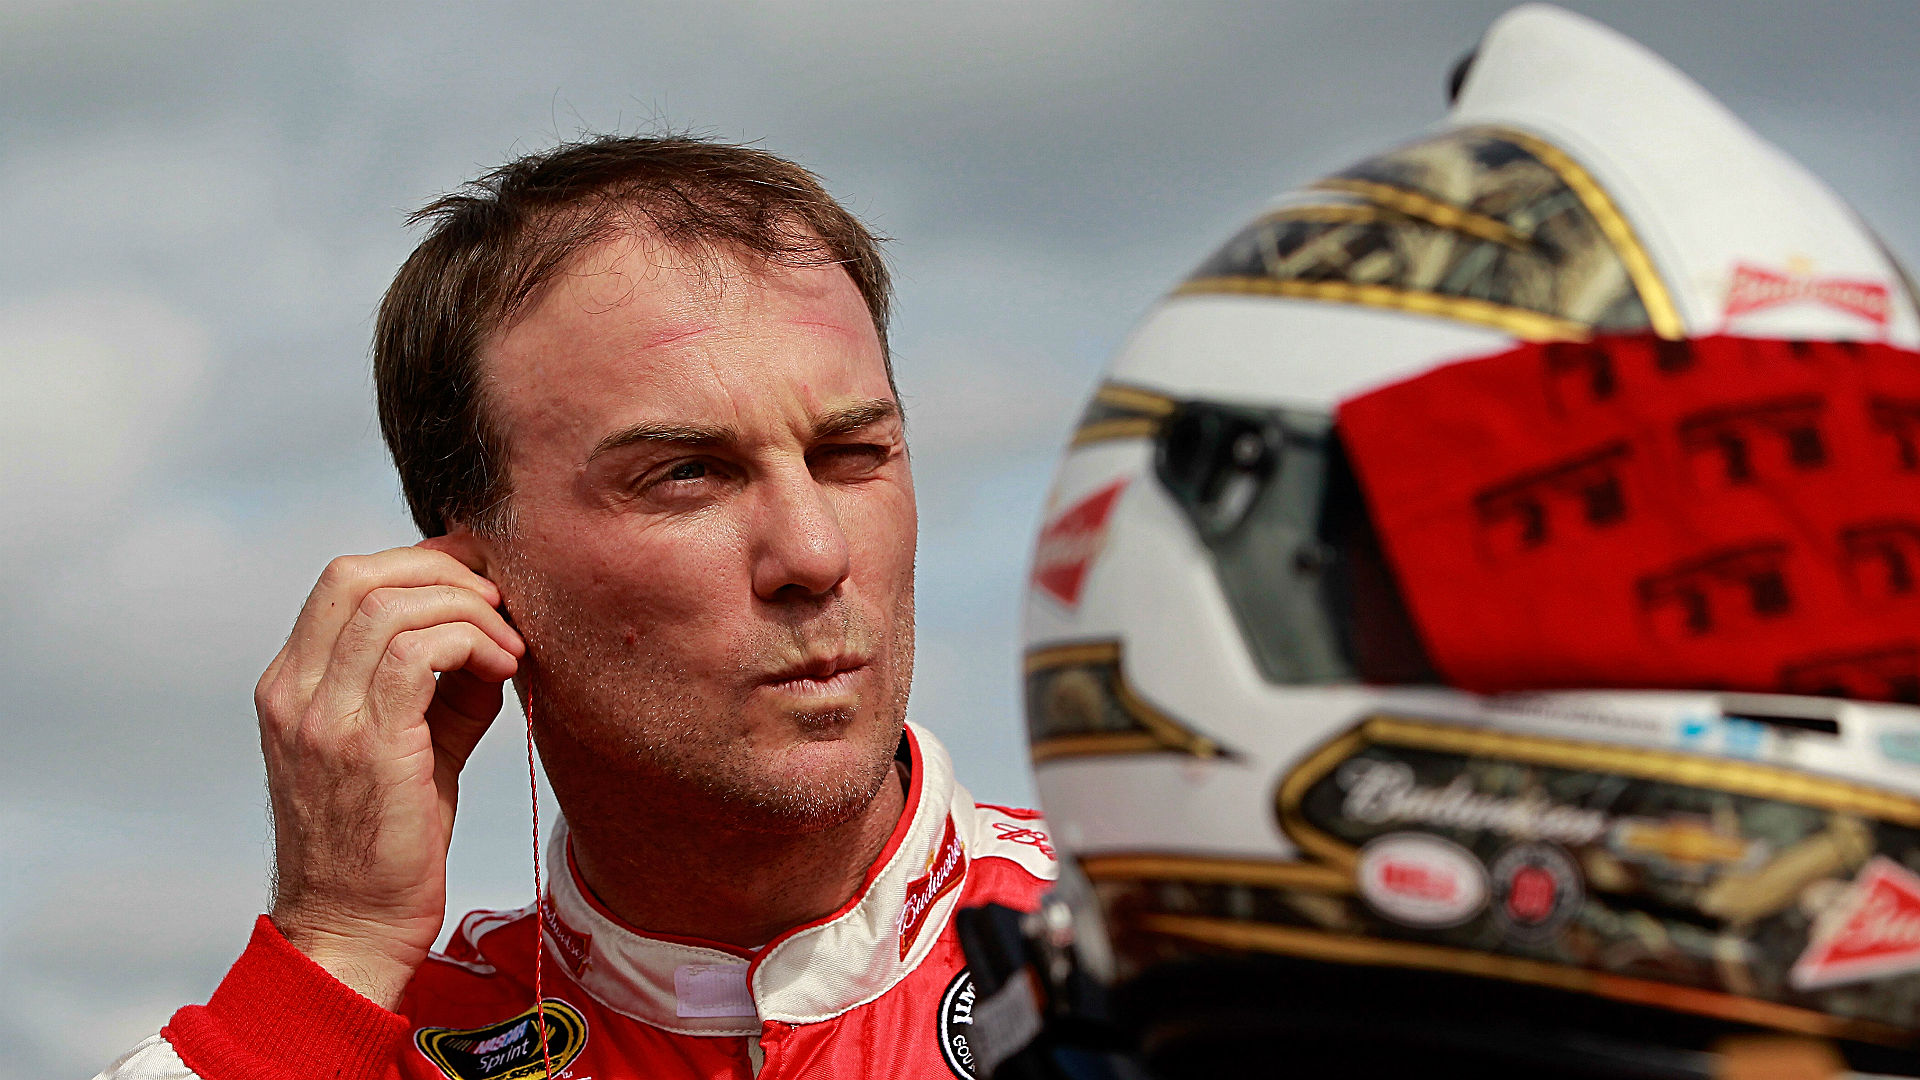 NASCAR odds and driver ratings – Harvick one to beat despite no career Pocono wins